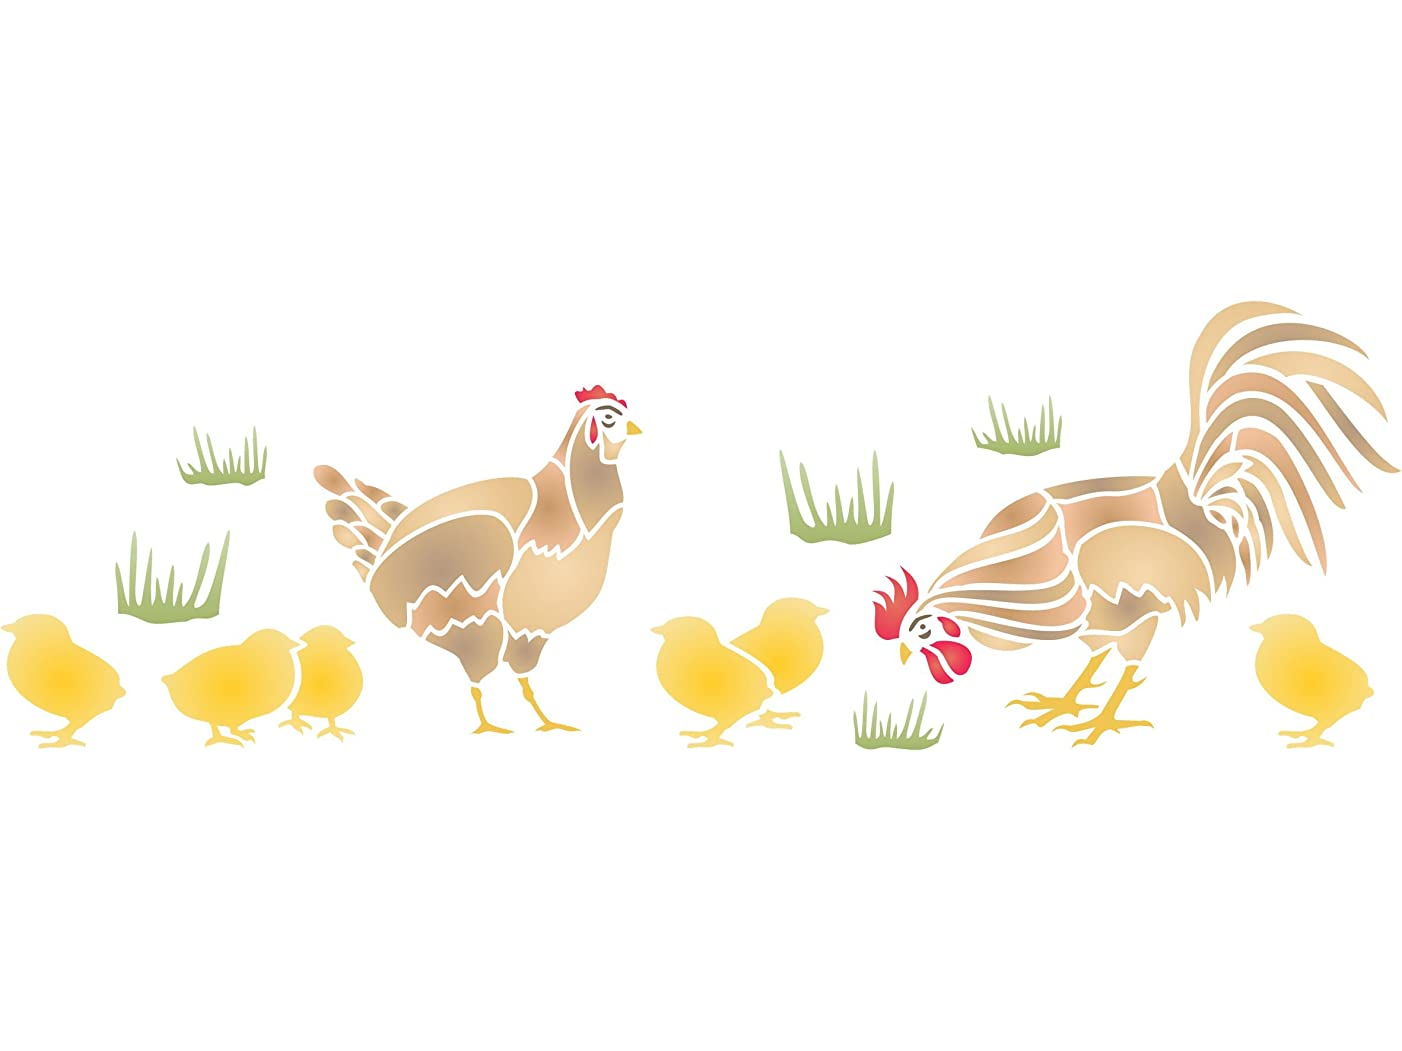 """Chicken Stencil - (size 20""""w x 6.5""""h) Reusable Wall Stencils for Painting - Best Quality Wall Bird Animal Stencil Ideas - Use on Walls, Floors, Fabrics, Glass, Wood, Terracotta, and More…"""